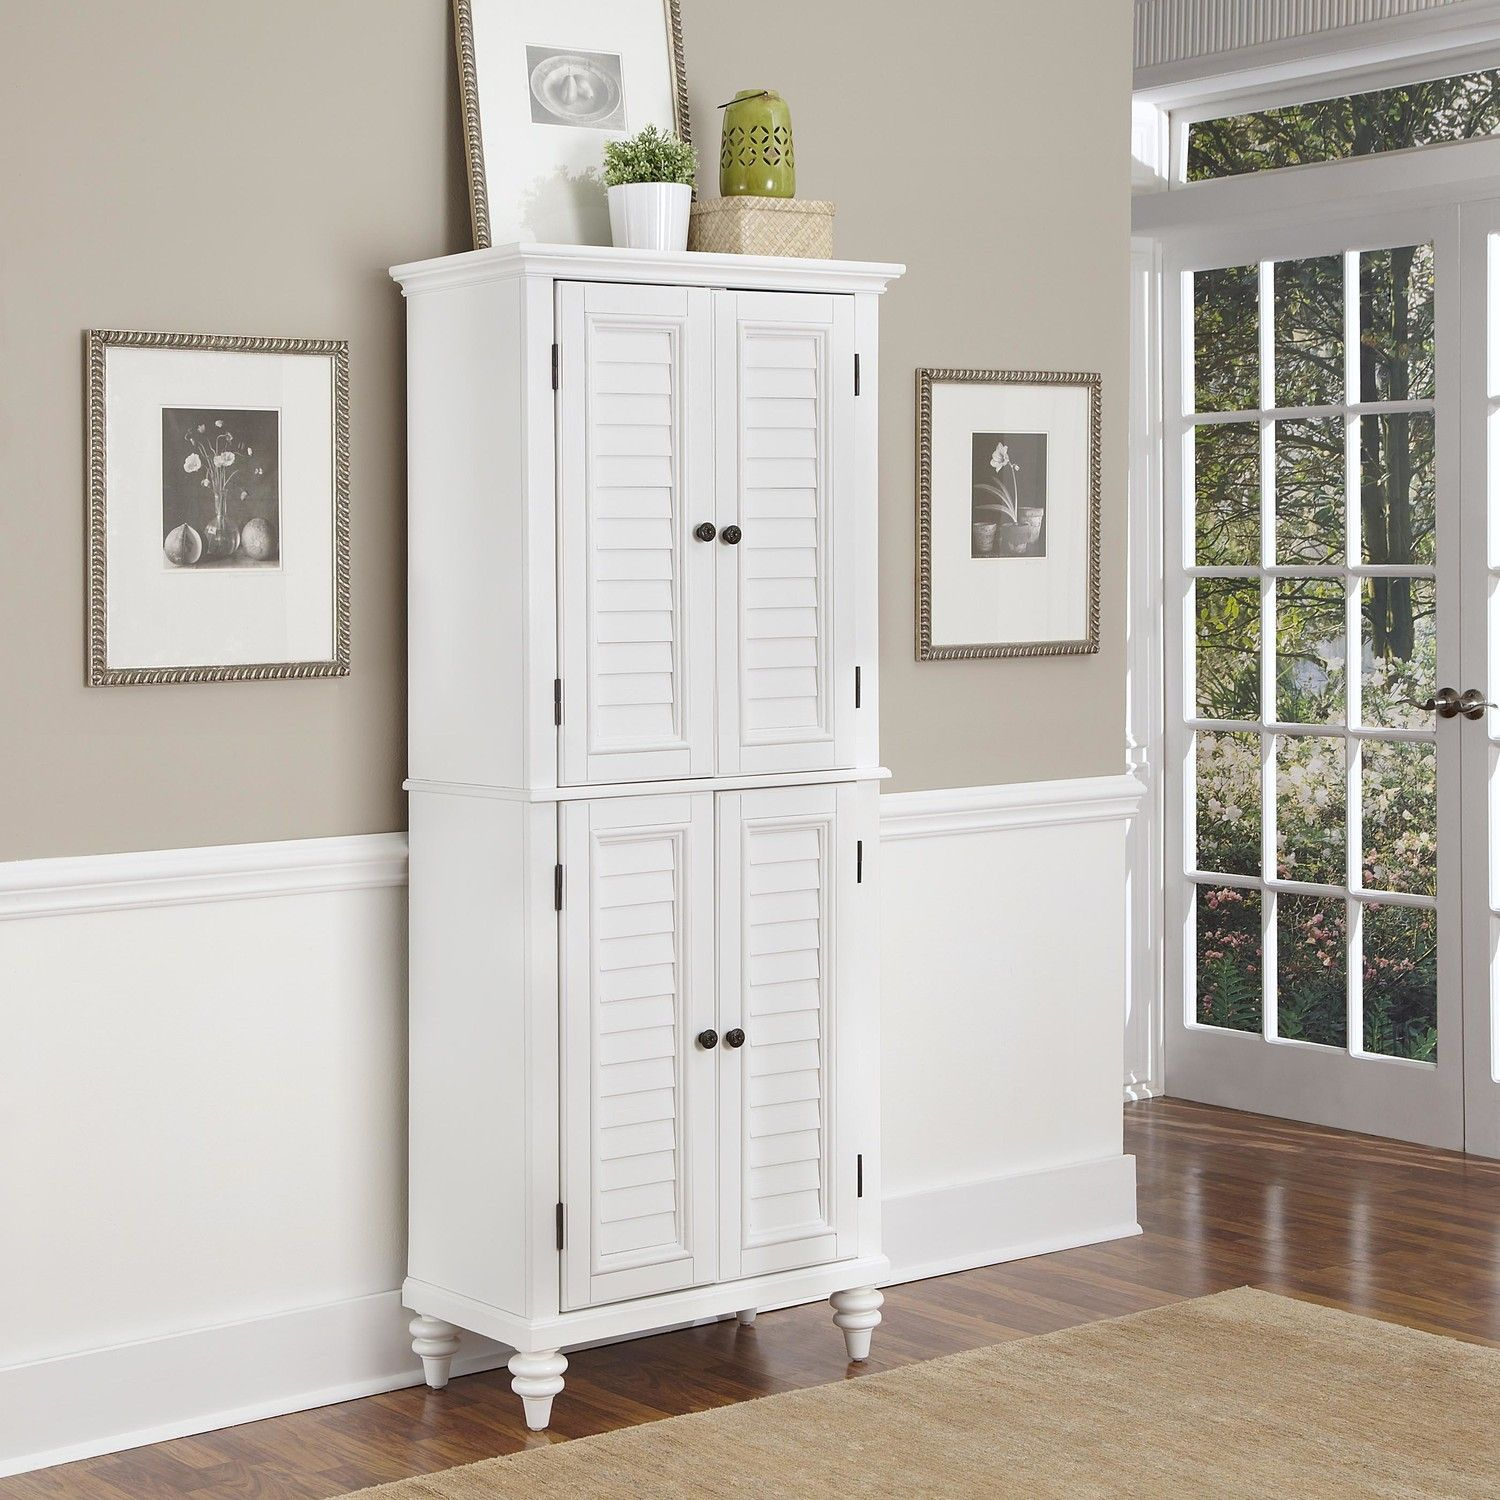 Door Pantry Cabinet with Furniture: Portable Kitchen Pantry ...